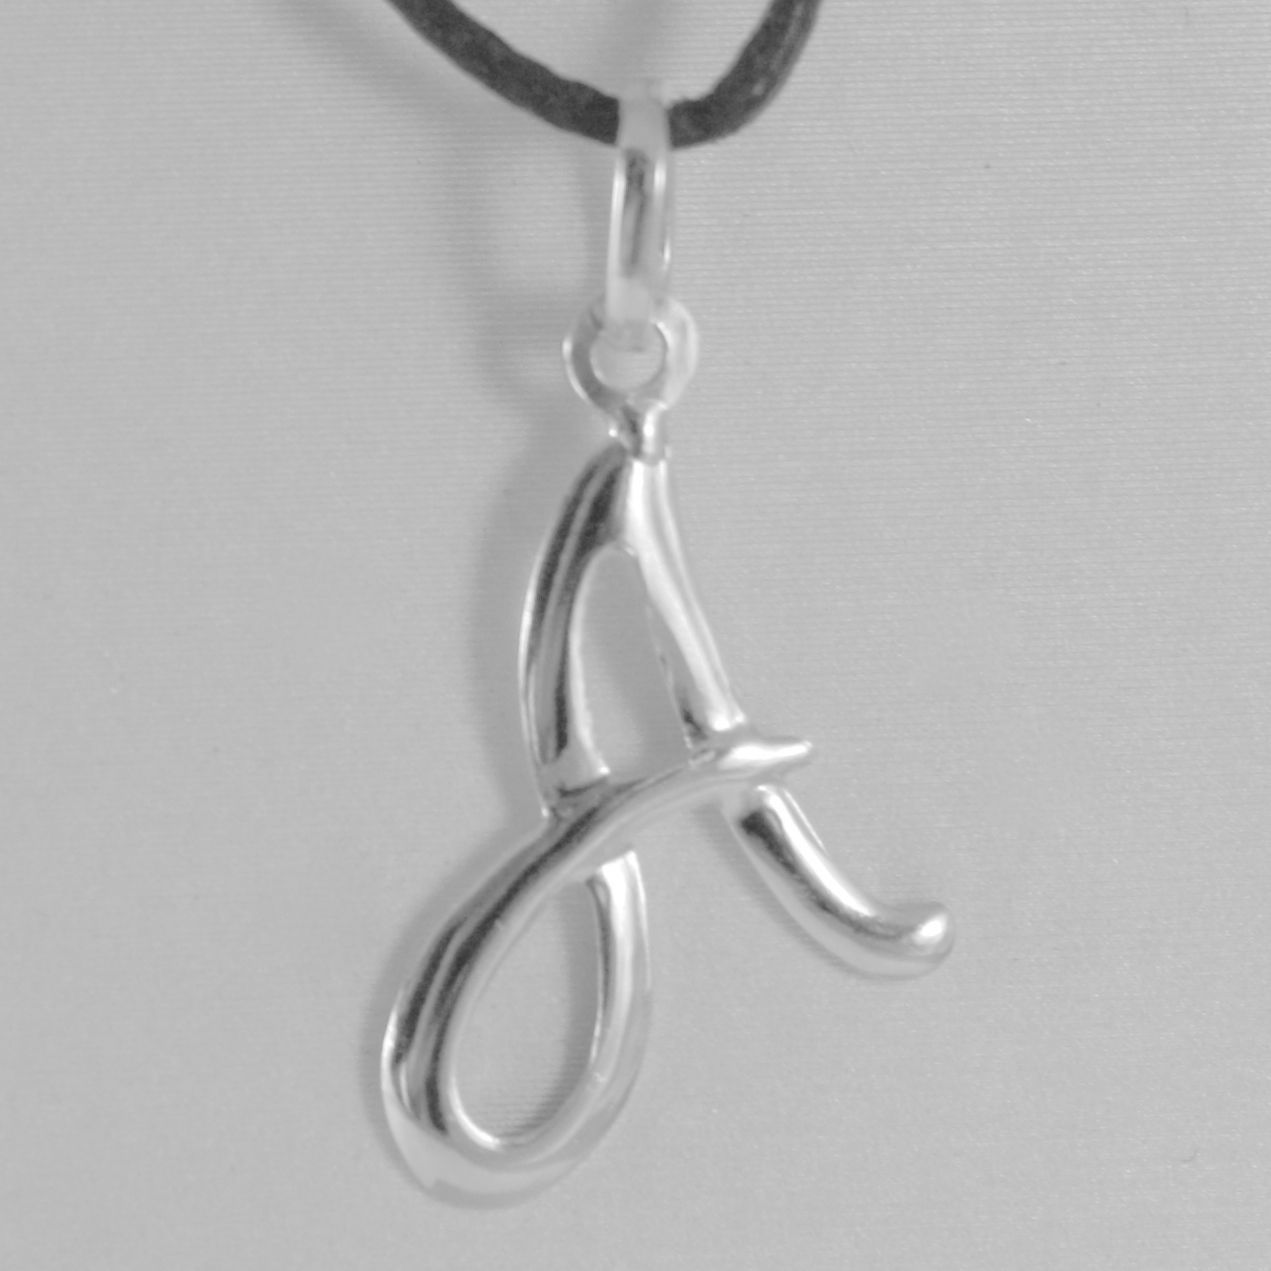 PENDANT WHITE GOLD 18K WITH INITIAL LETTER A LUCIDA 2,5 CM WITH CORD